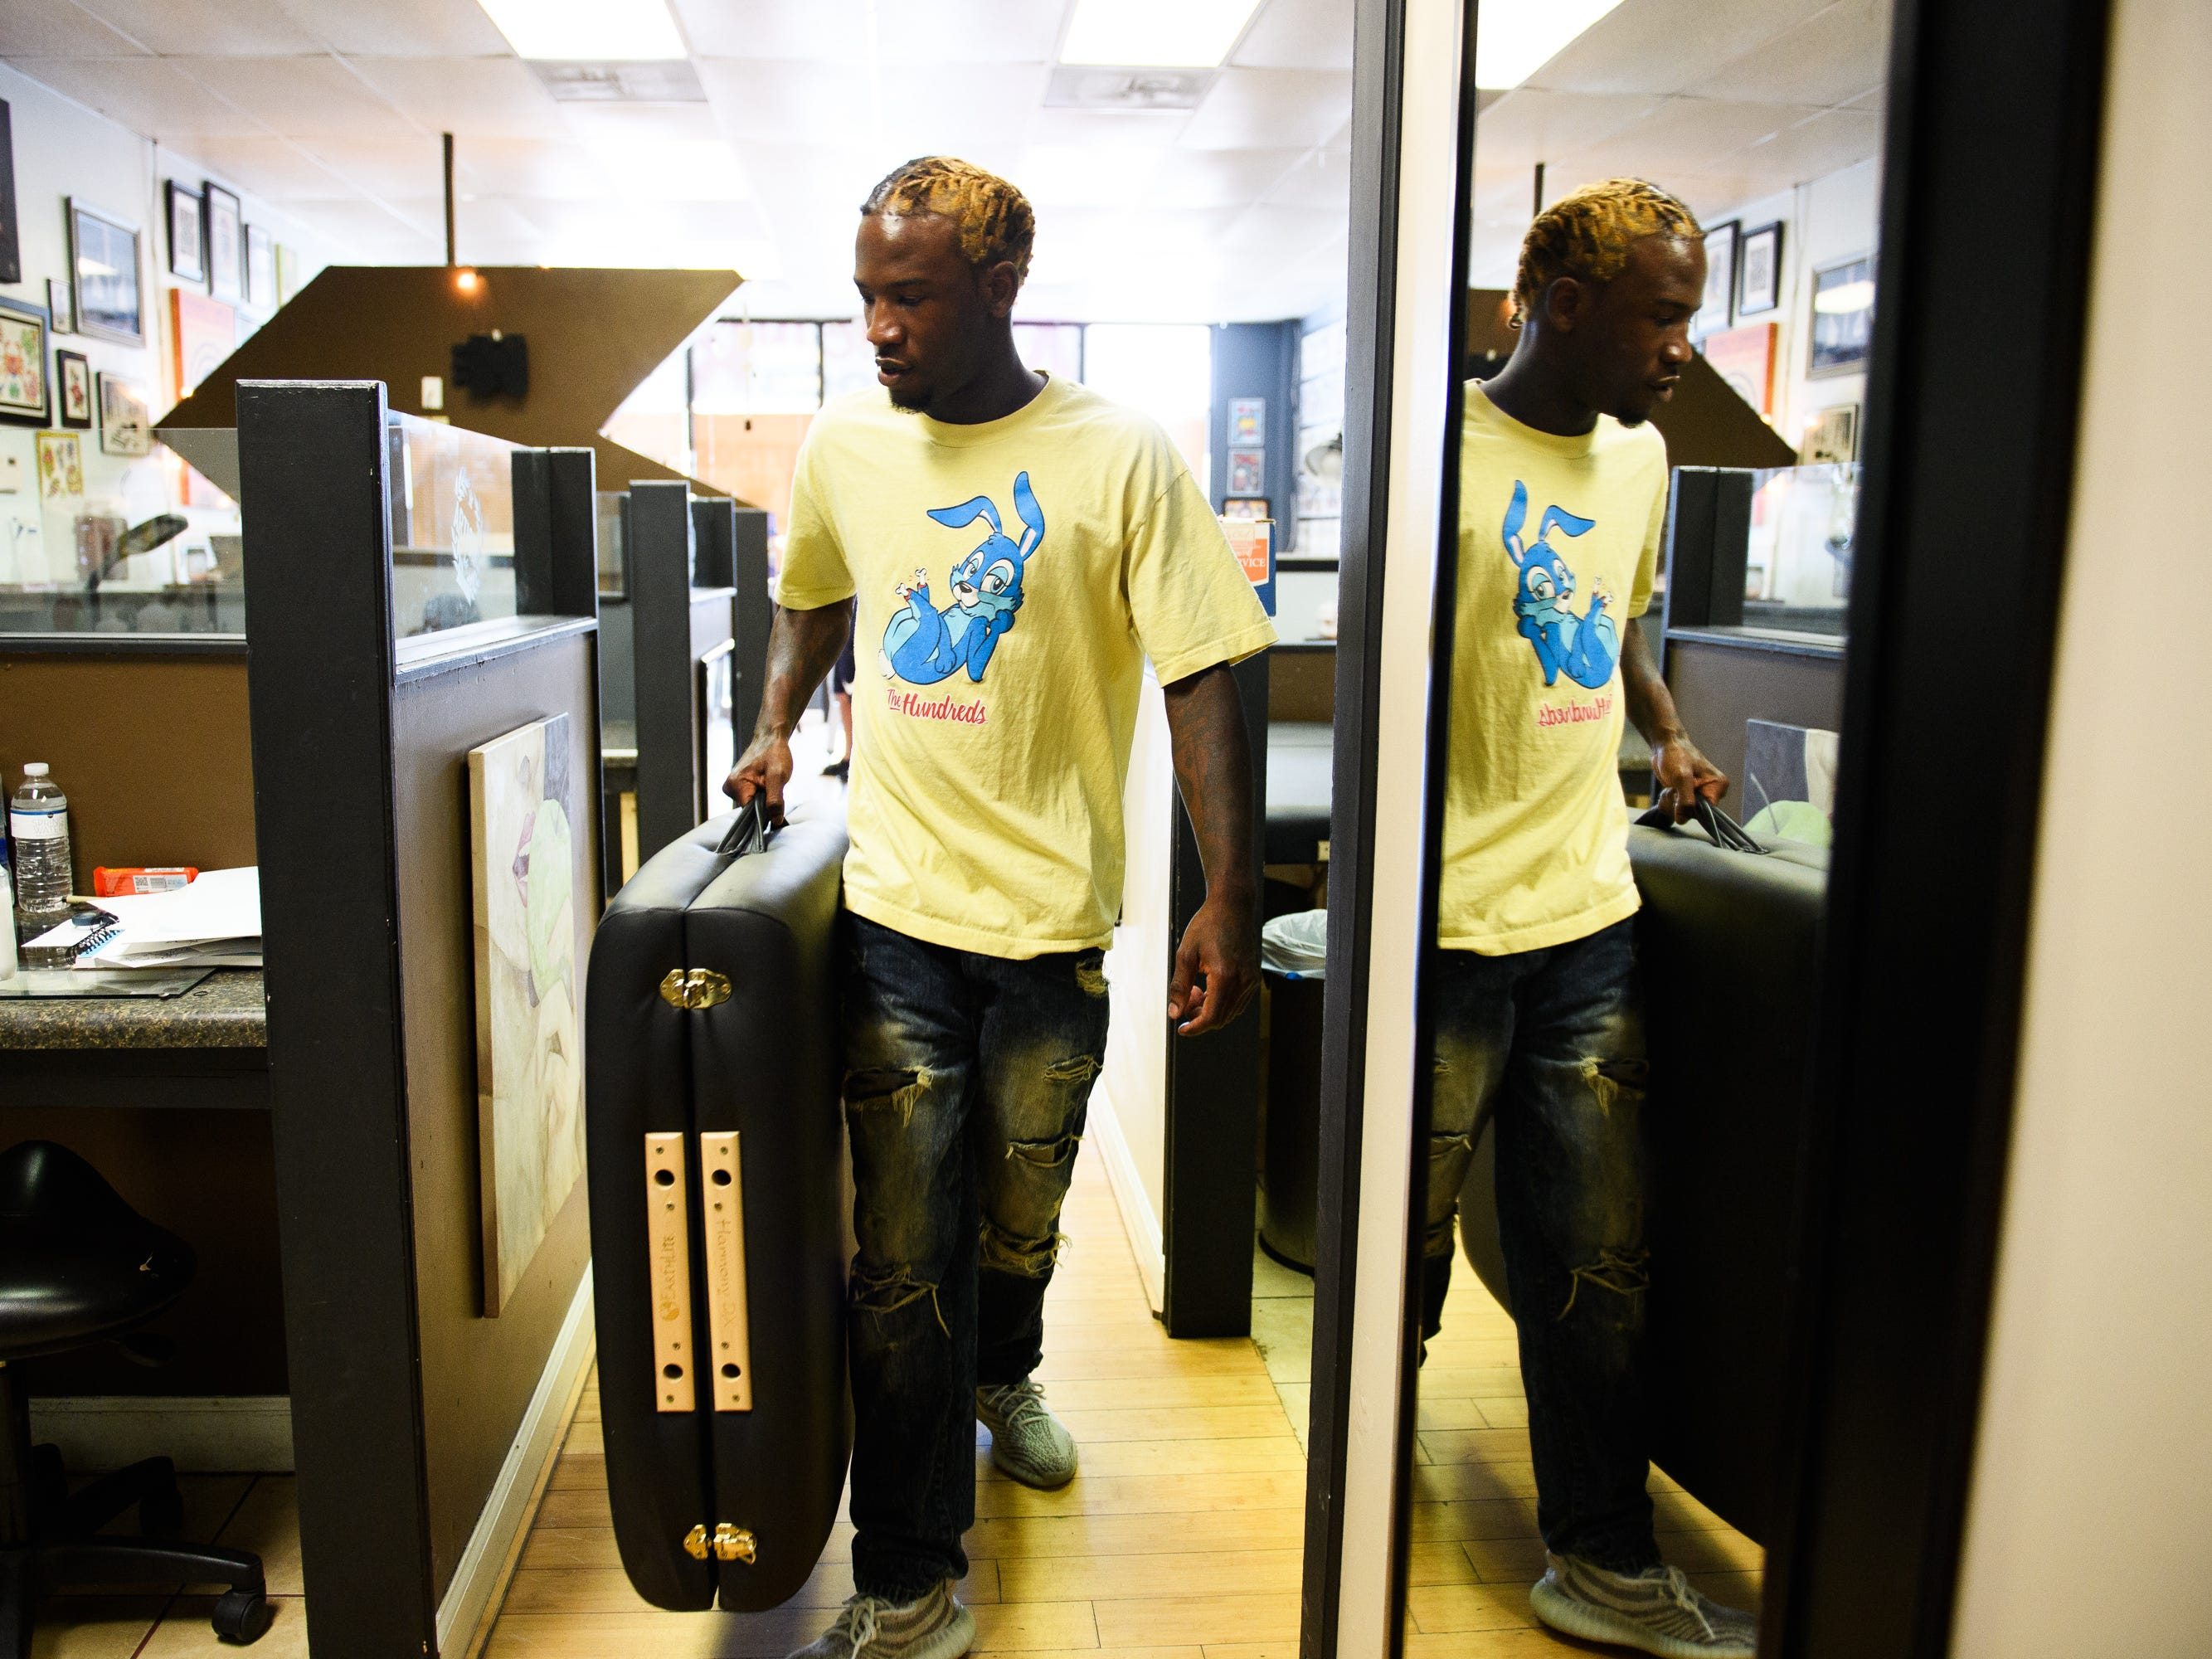 Isiah Kinloch brings a portable bed to his workspace. He never got a chance to fight for money taken by police. Notices for a civil court process went to his old address, and he didn't know about the chance to appeal the seizure.